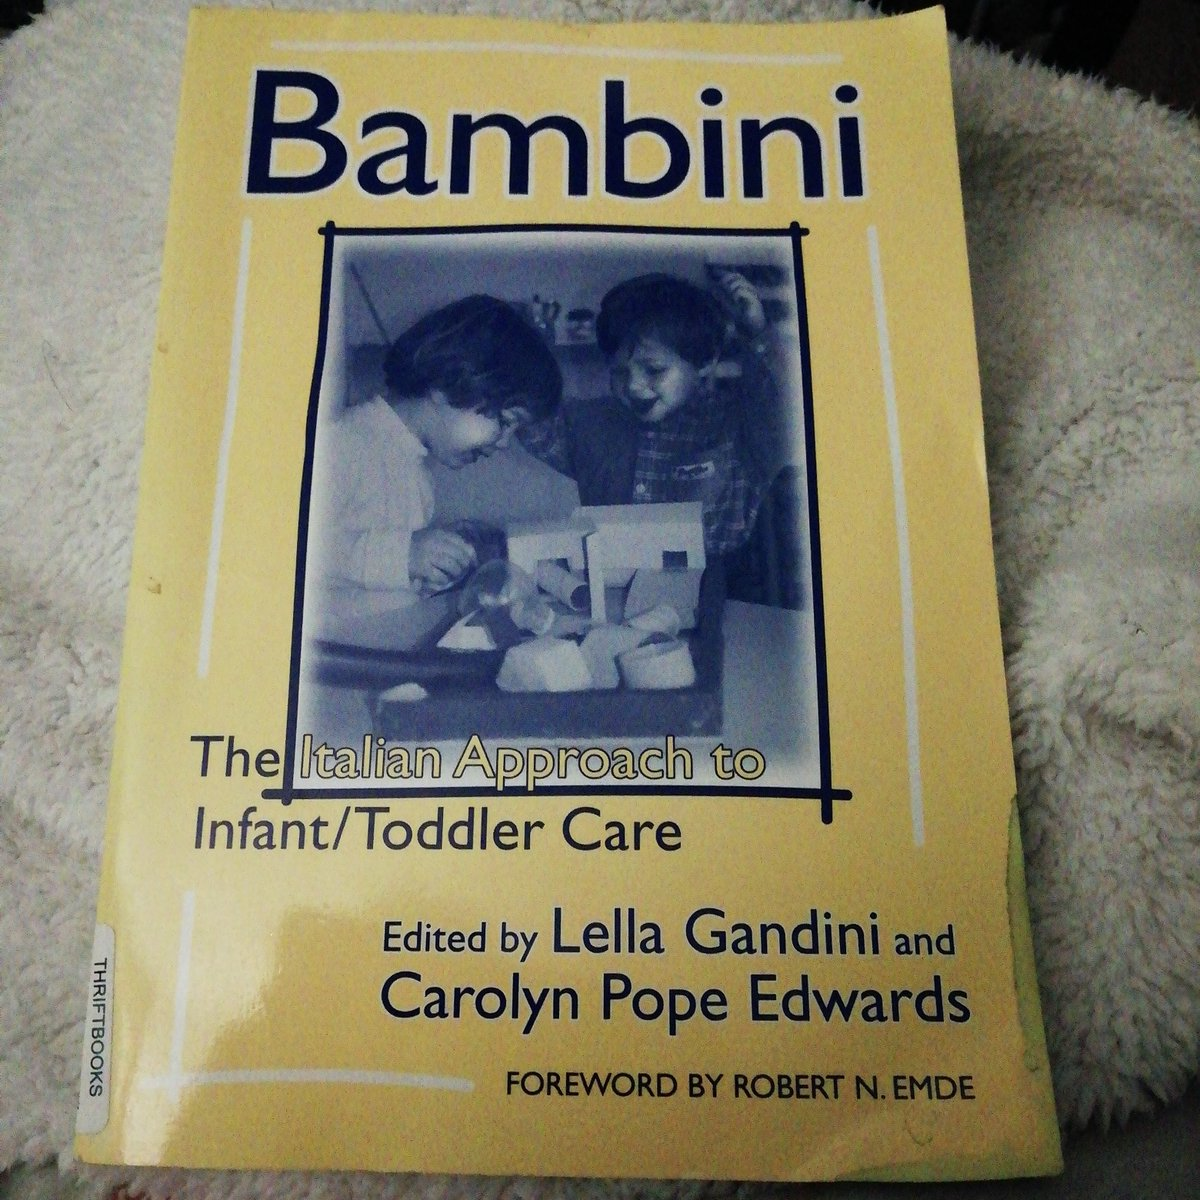 My new bedtime reading ❤️#reggioemiliainspired #learningeveryday #bambini